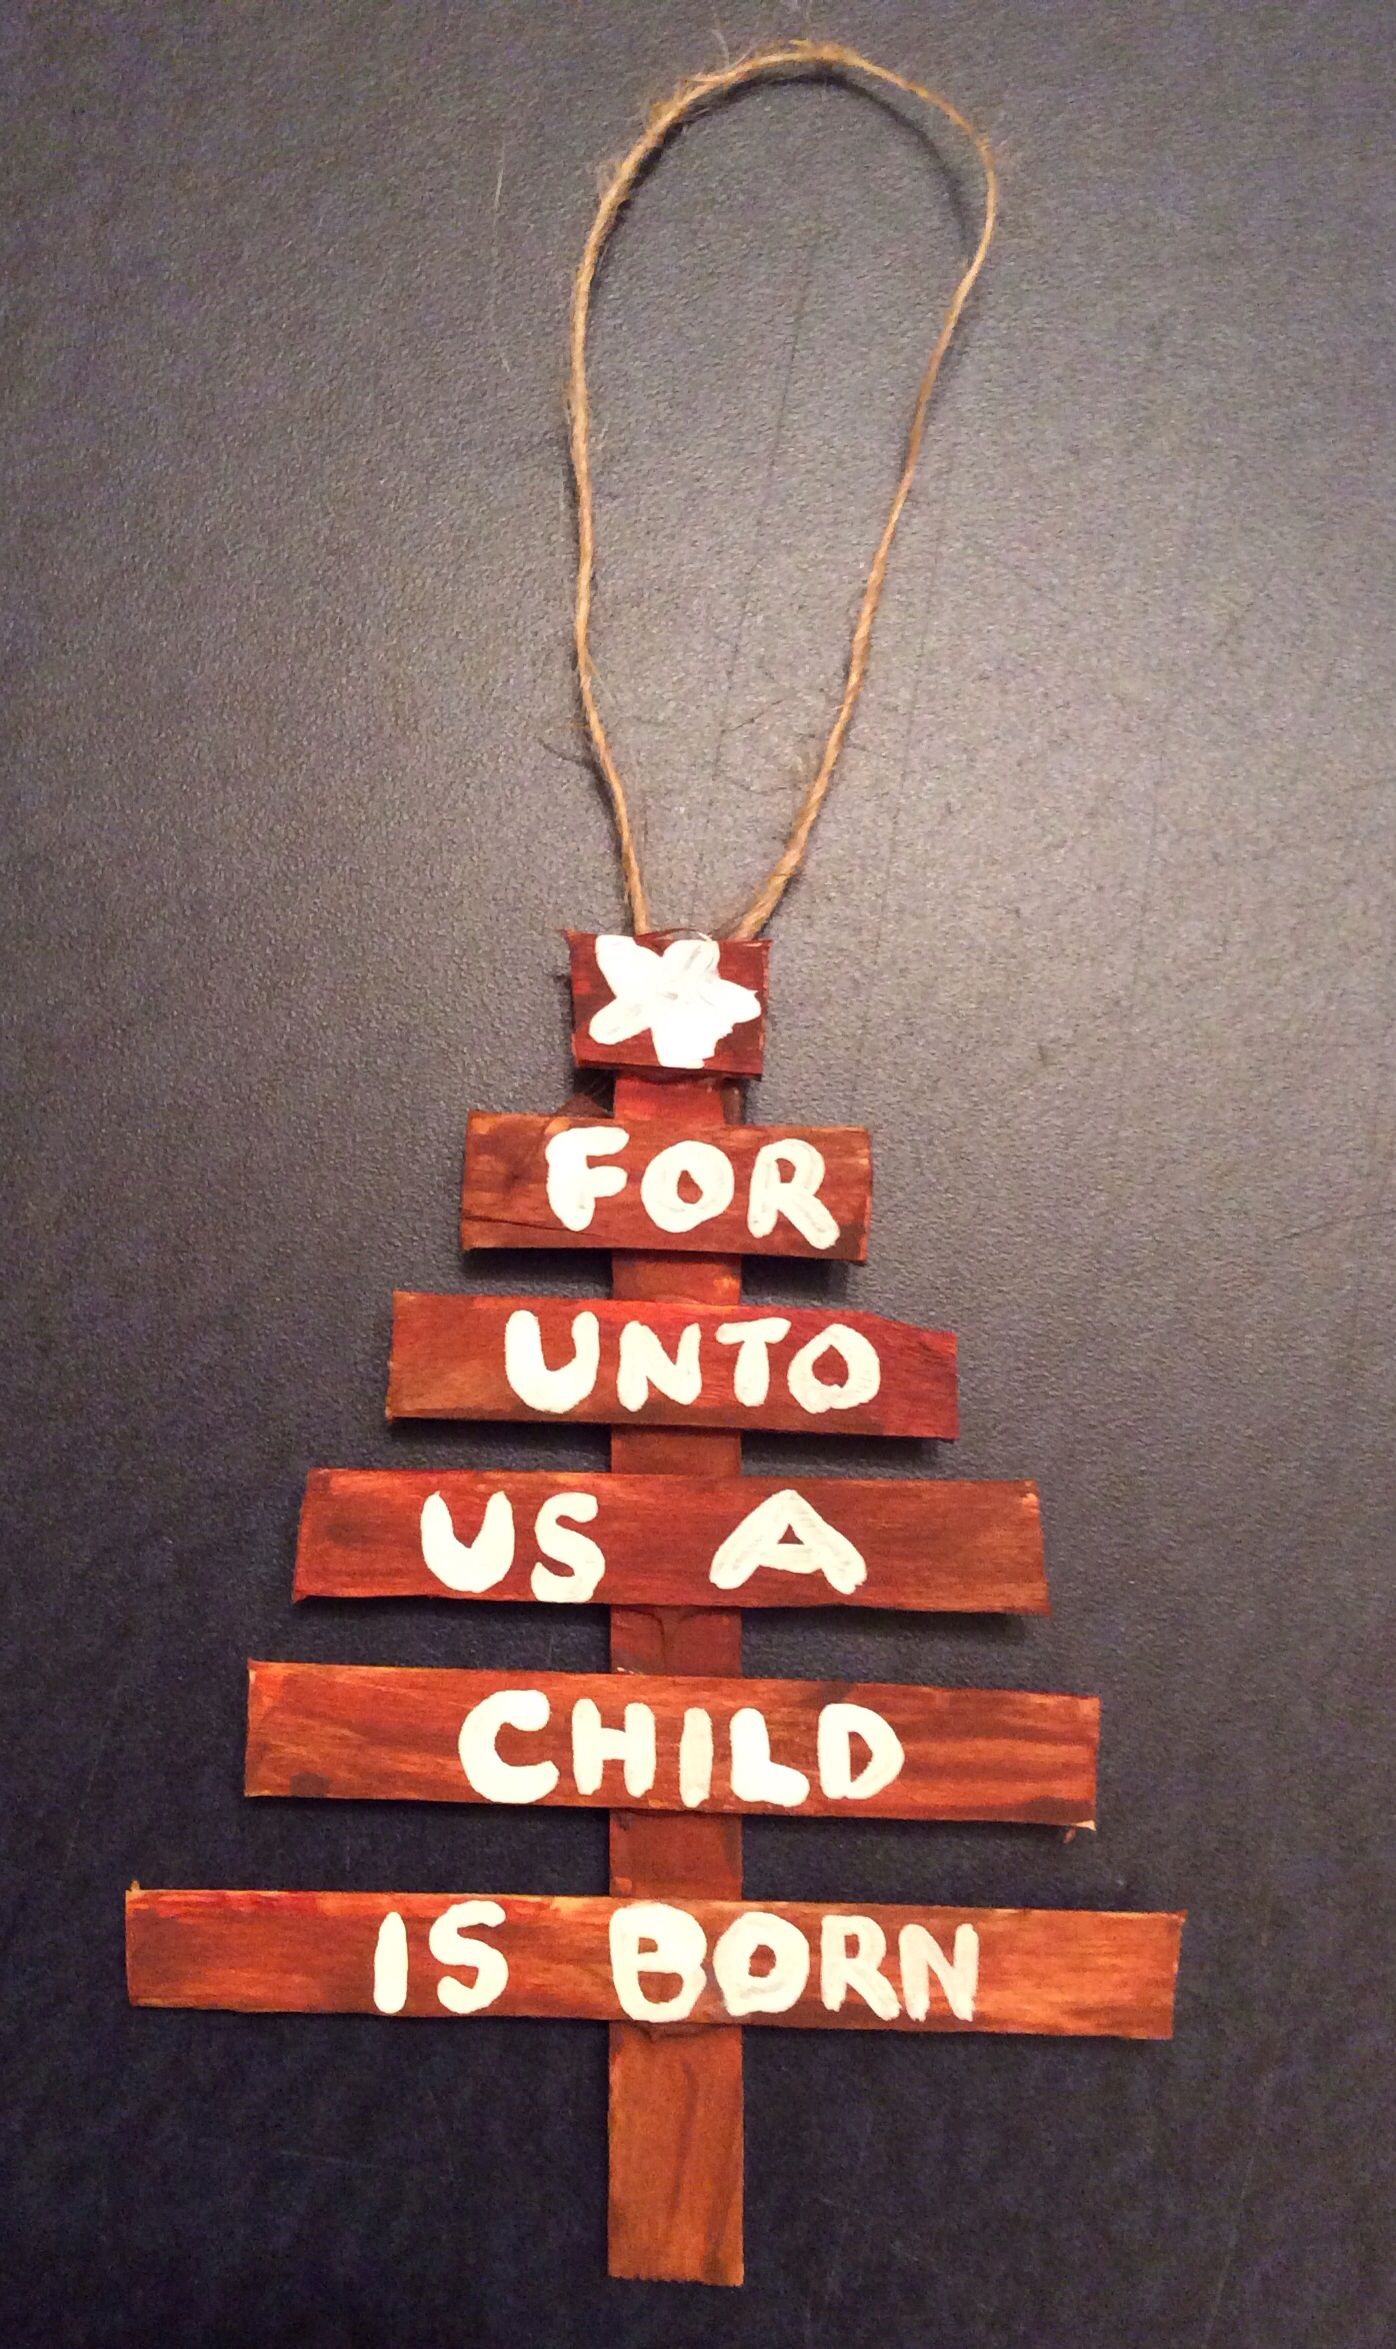 popsicle stick christmas tree ornament isaiahs prophecy about jesus made these unpainted for the sunday school kids to decorate after learning about